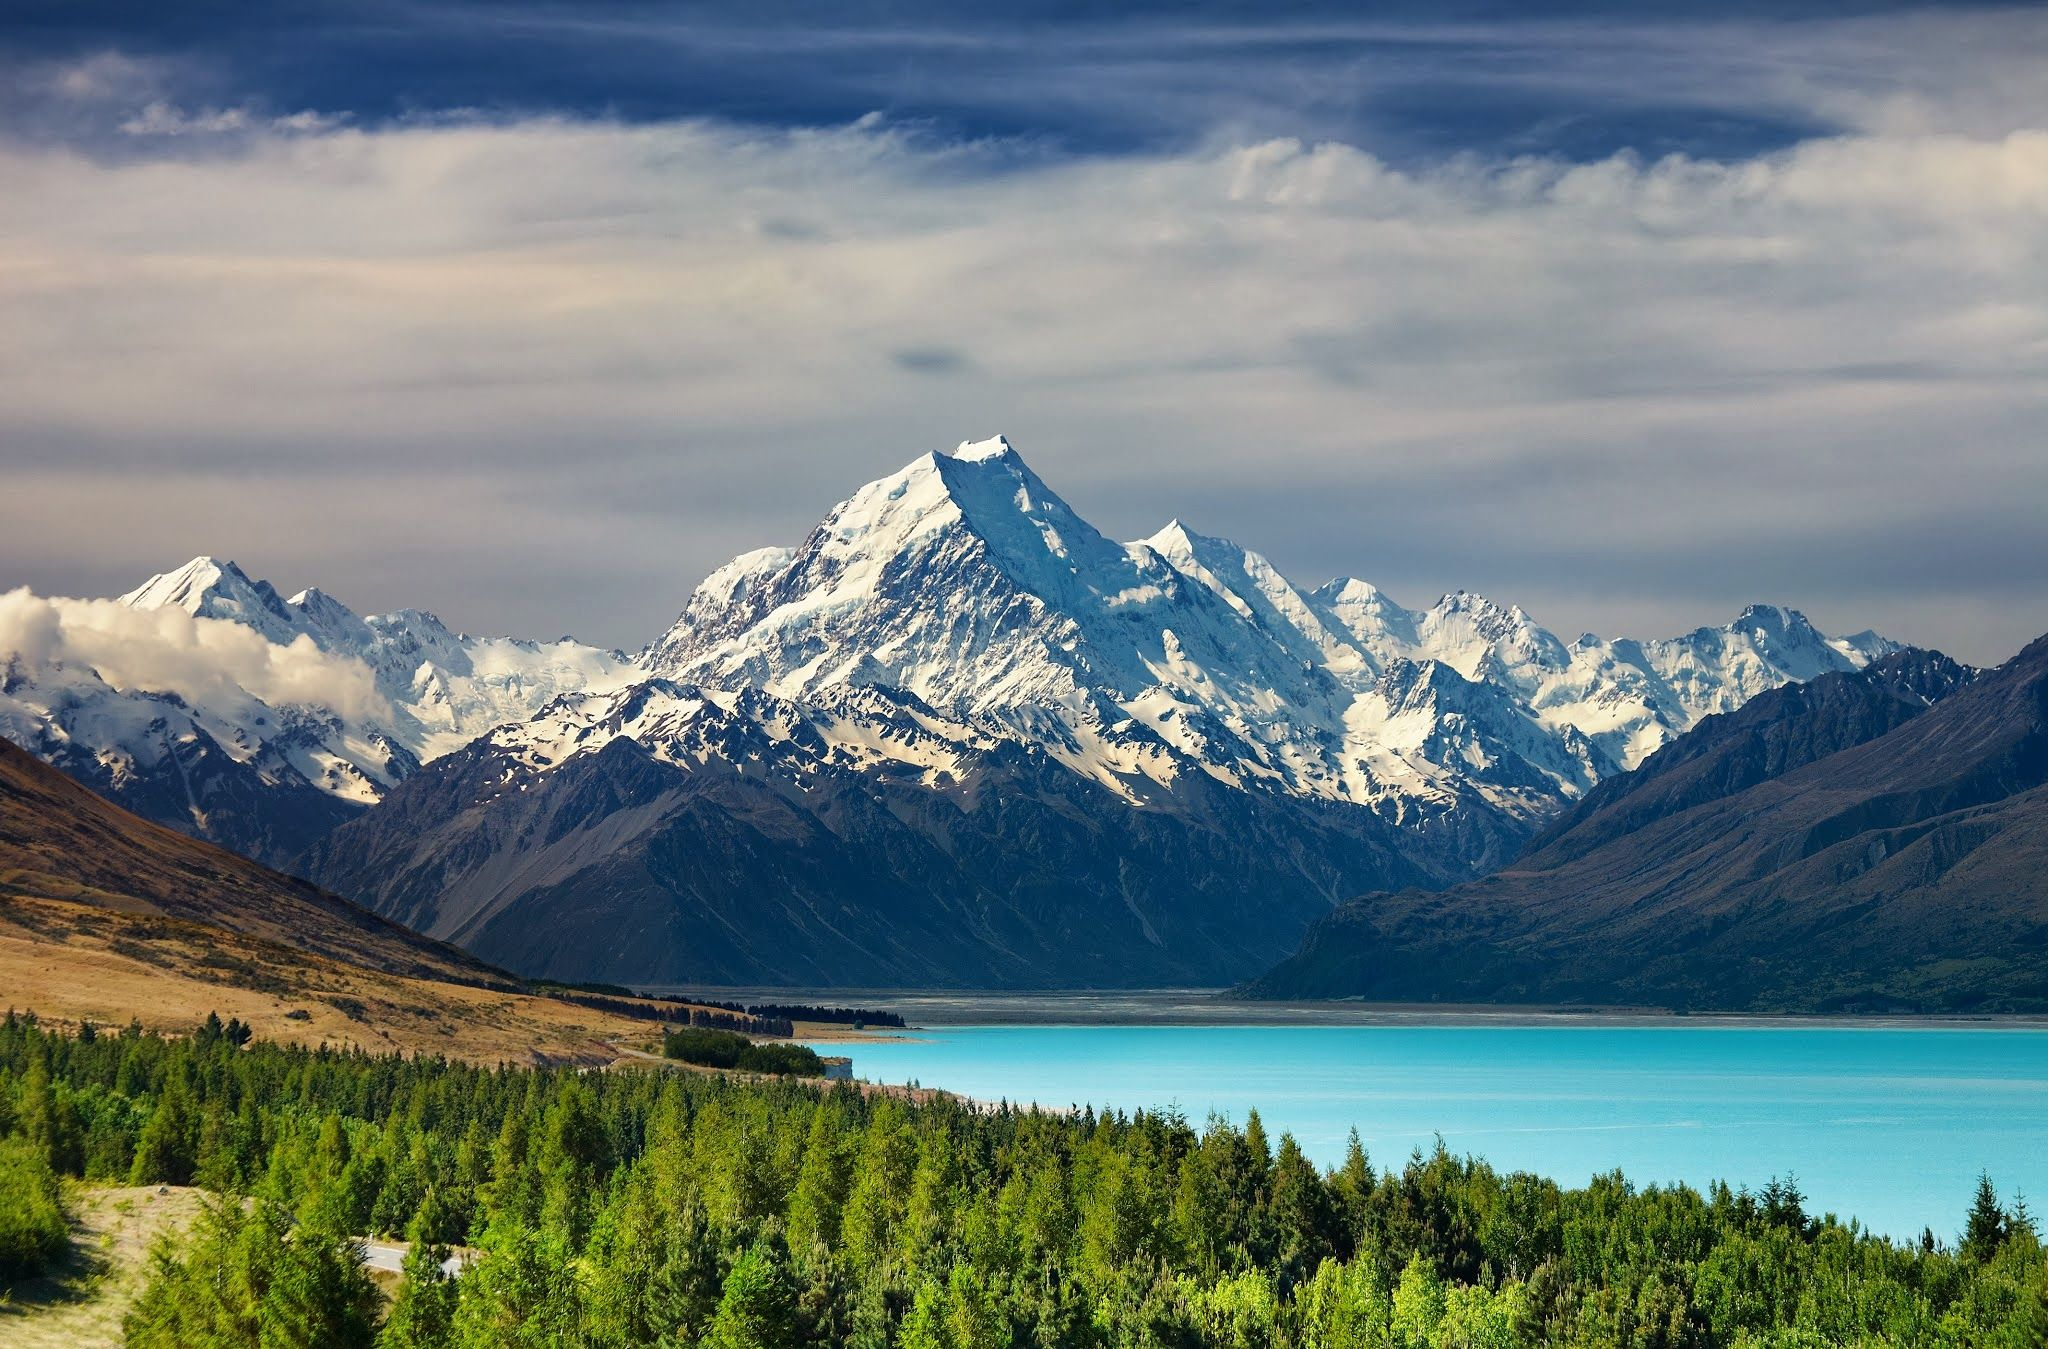 New Zealand Mountains Wallpapers 1080p New Zealand Mountains New Zealand Holidays New Zealand Landscape